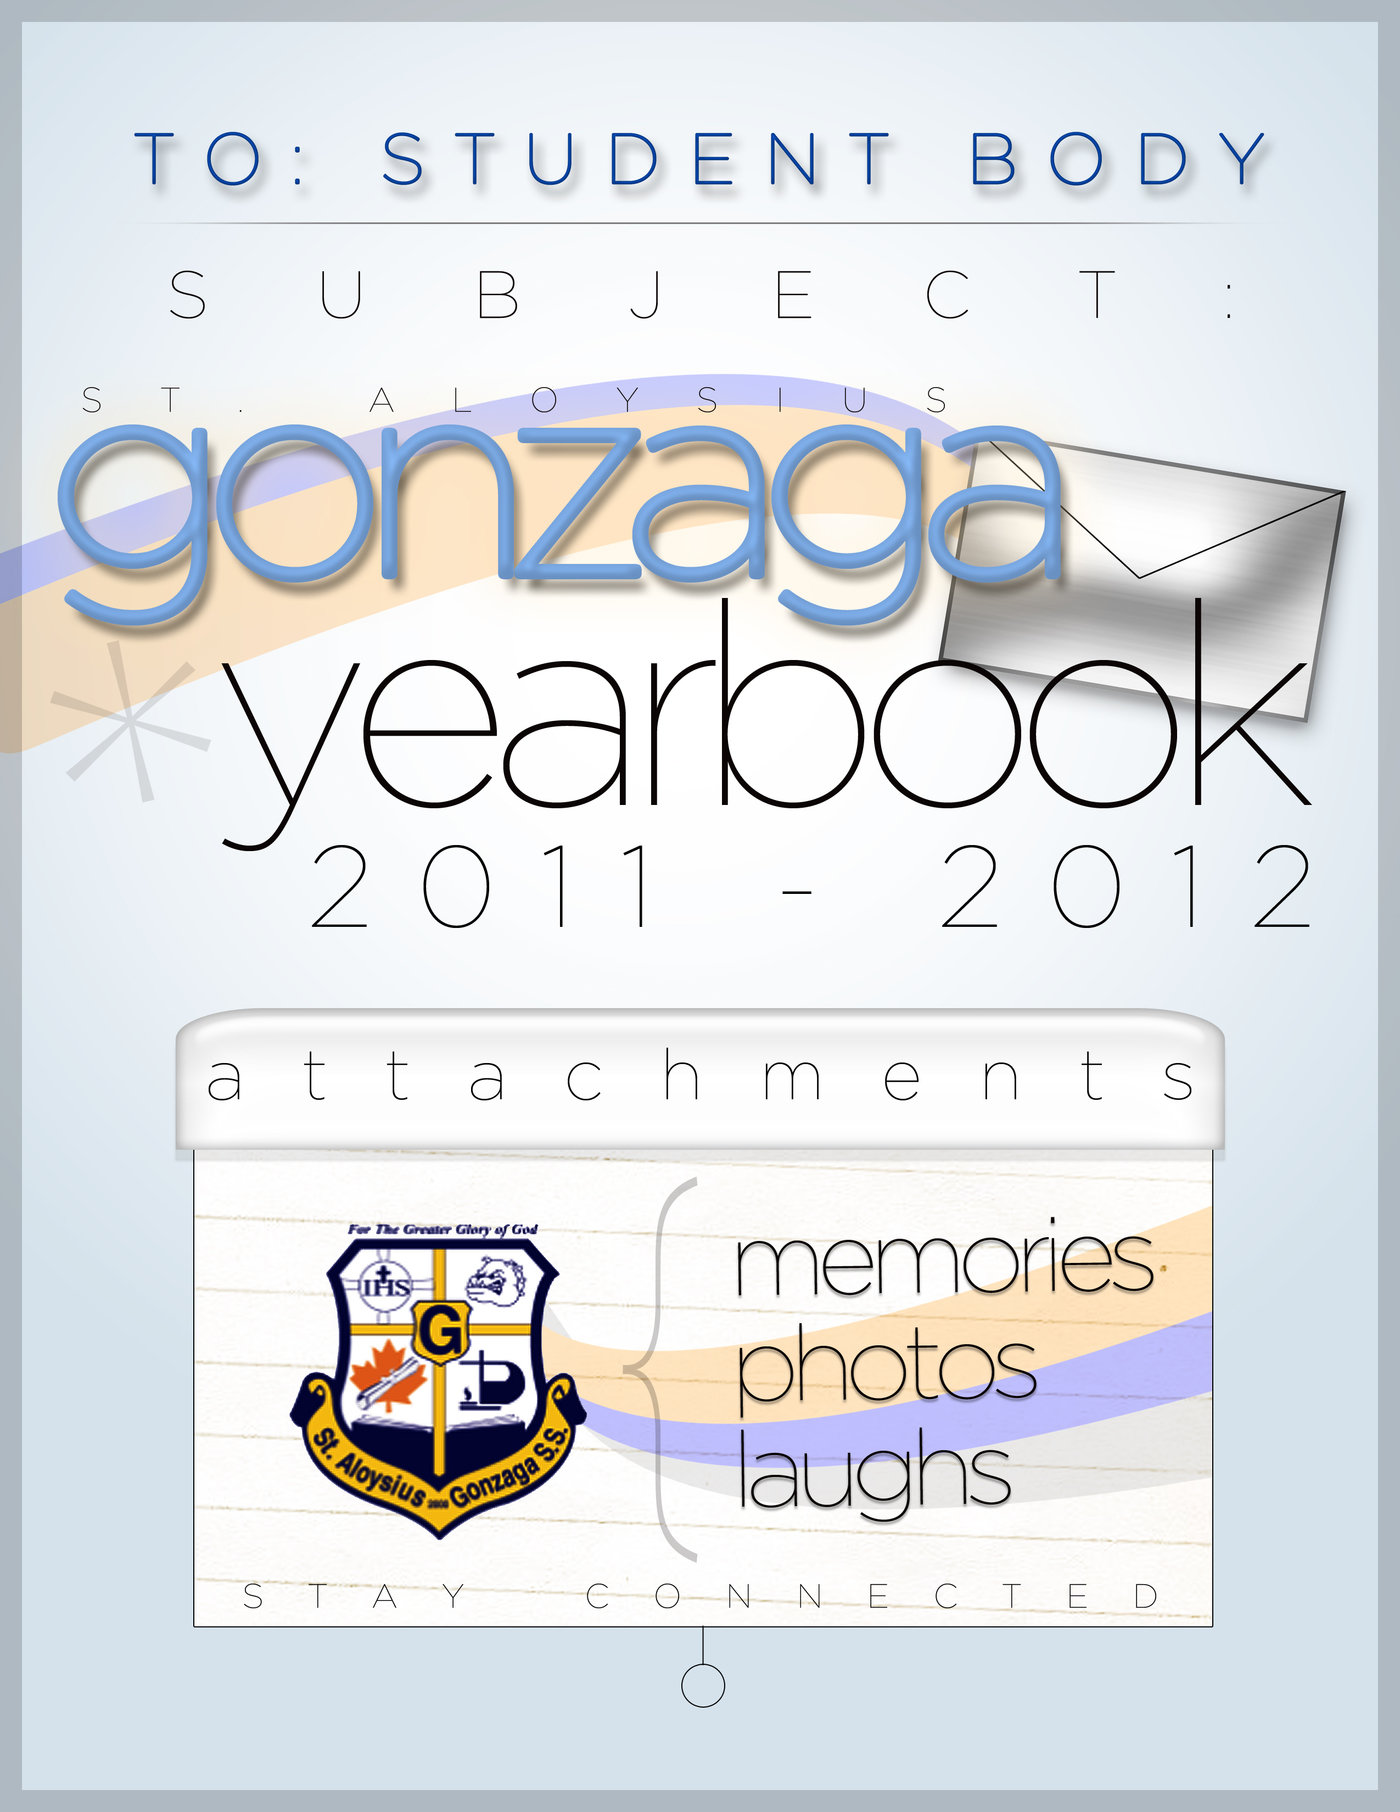 St Aloysius Gonzaga Secondary School Yearbook 2012 By